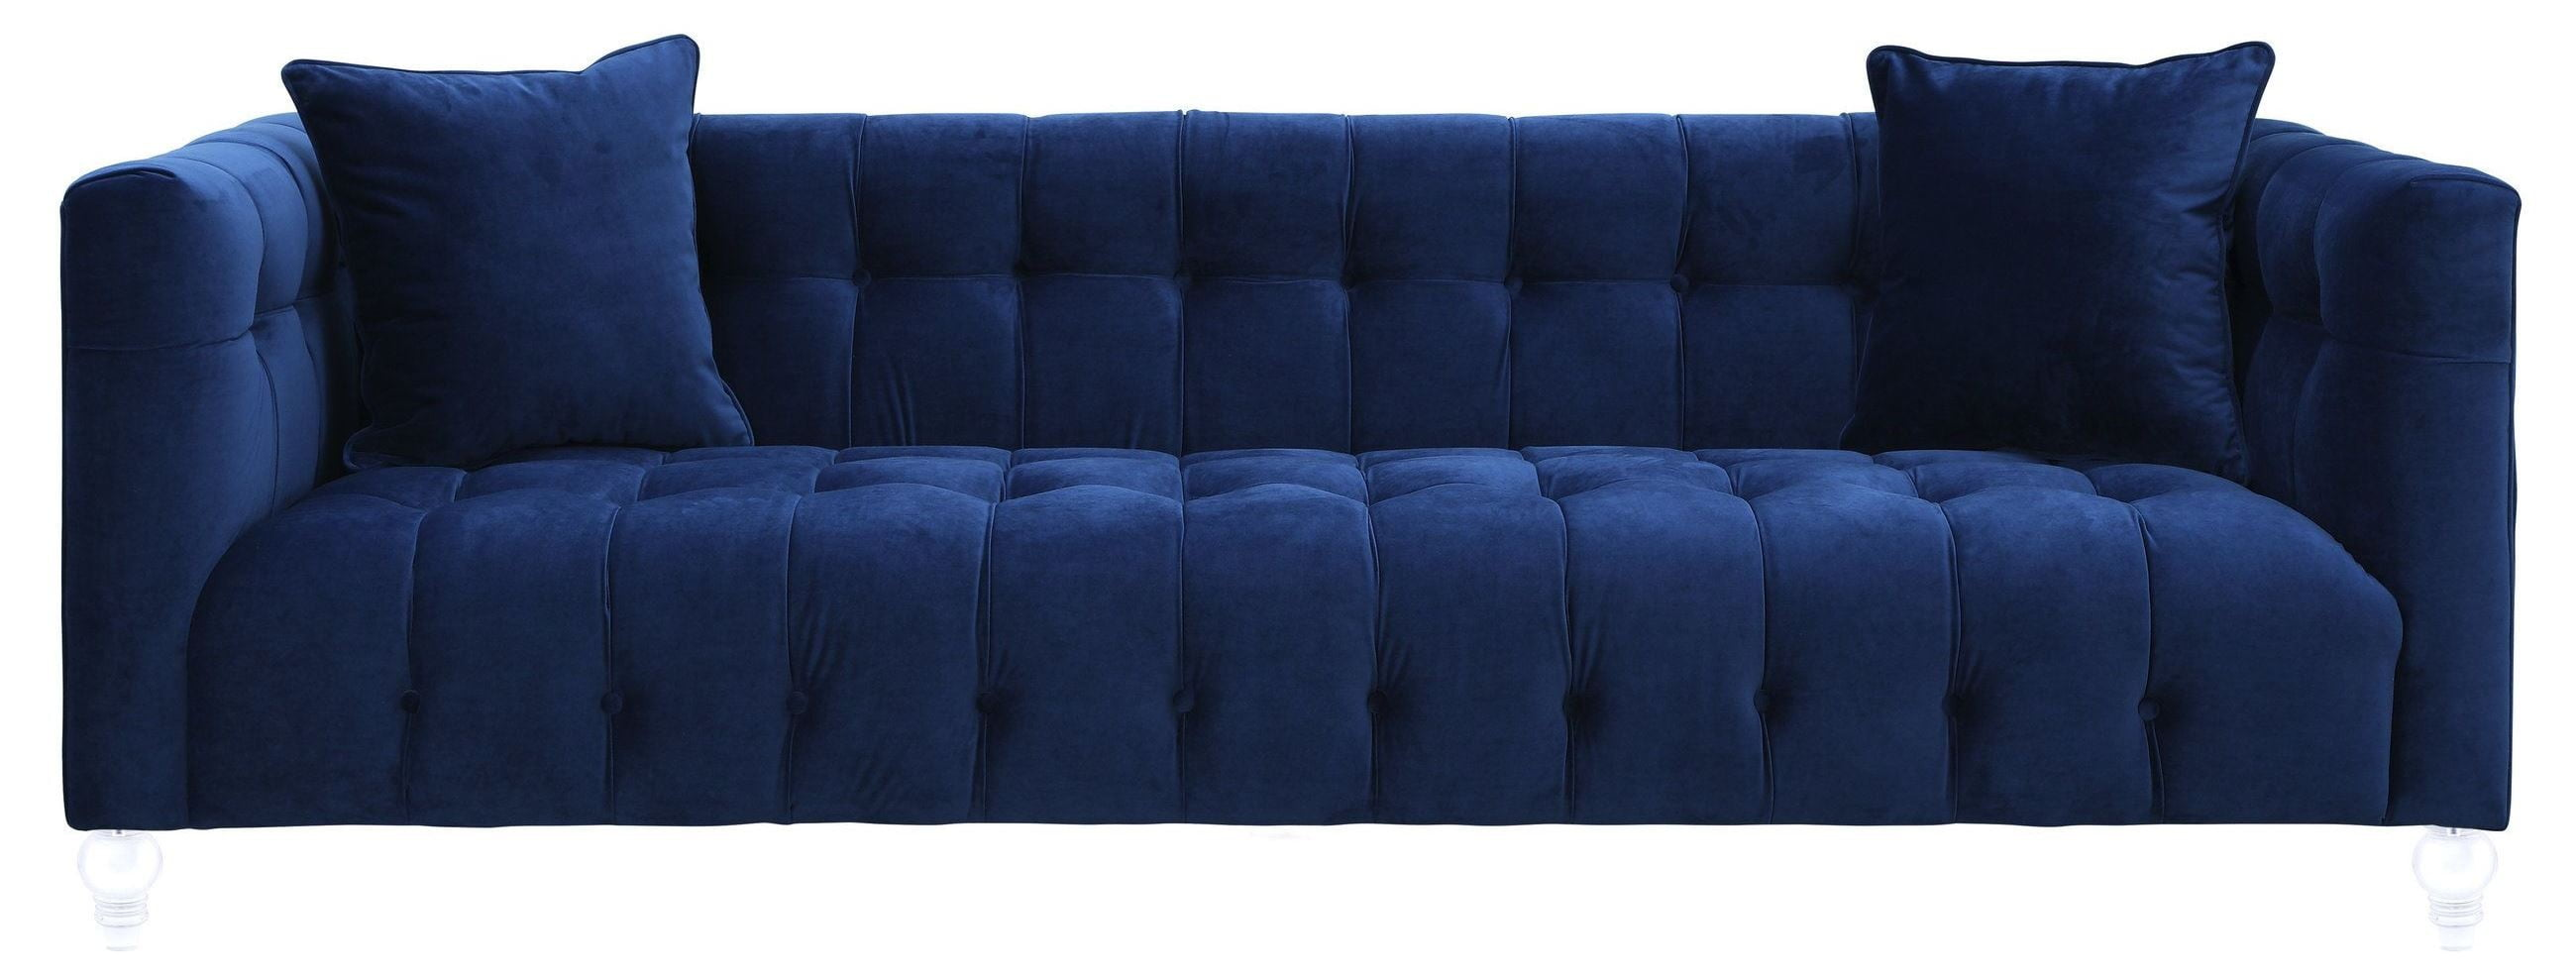 Bea Navy Velvet Sofa from TOV TOV S85 Coleman Furniture : tov s85 1 from colemanfurniture.com size 2600 x 987 jpeg 234kB